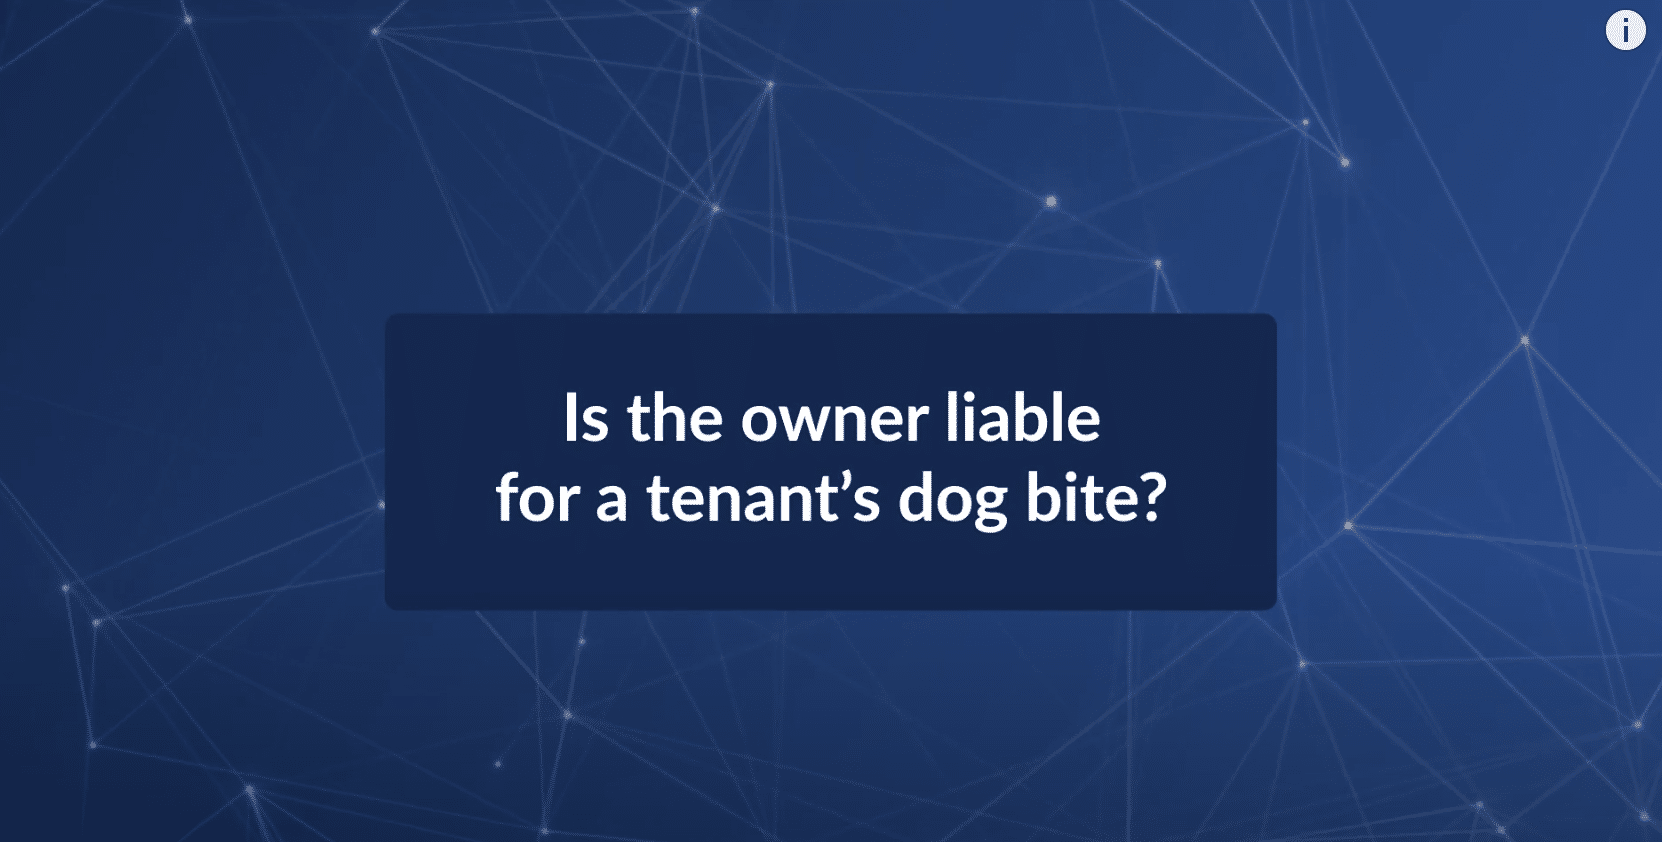 Is the Property Owner Liable for a Tenant's Dog Bite?